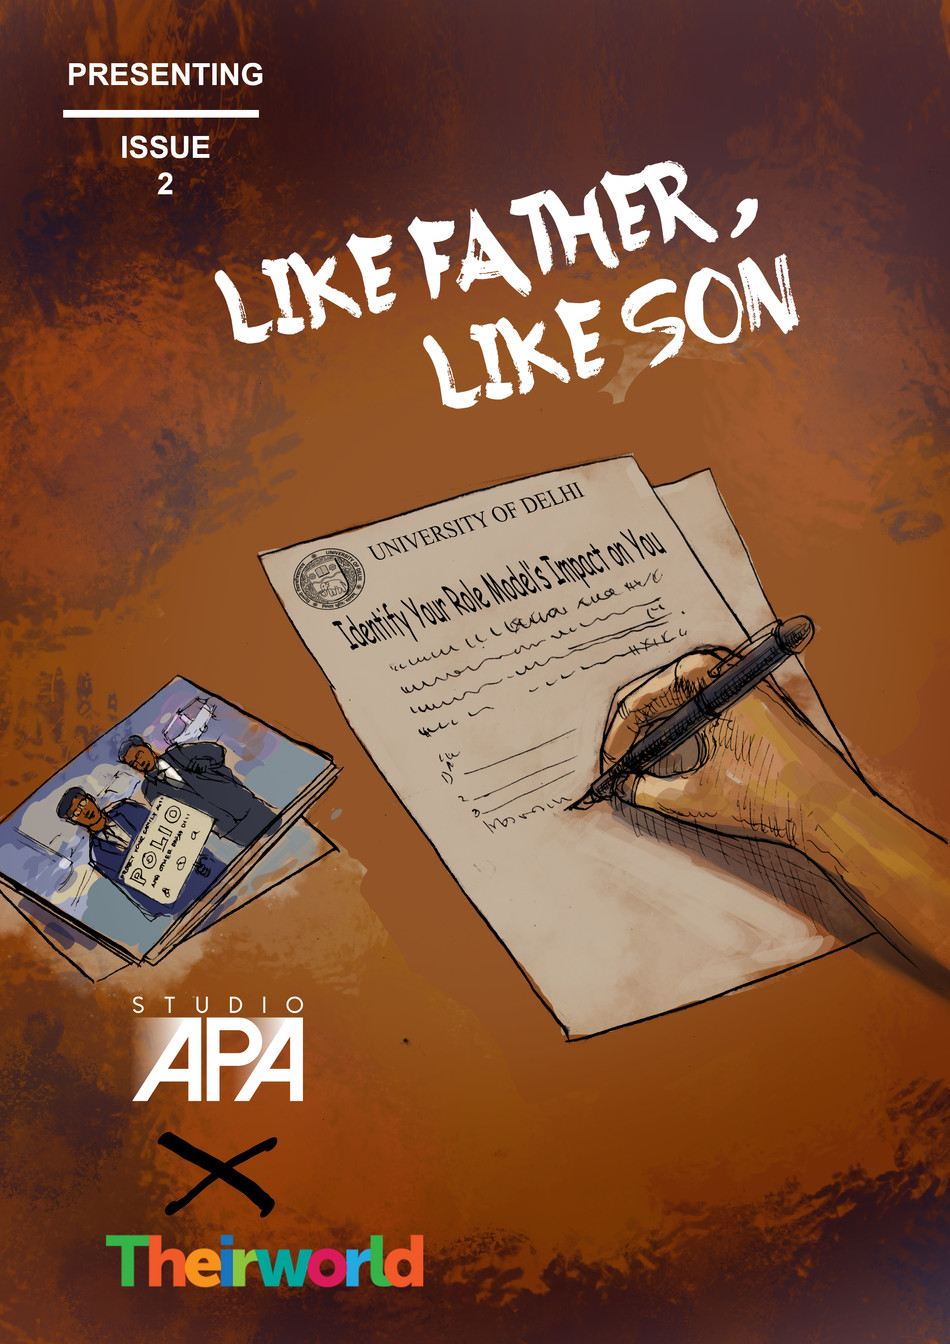 Presenting Issue 2: Like Father, Like Son